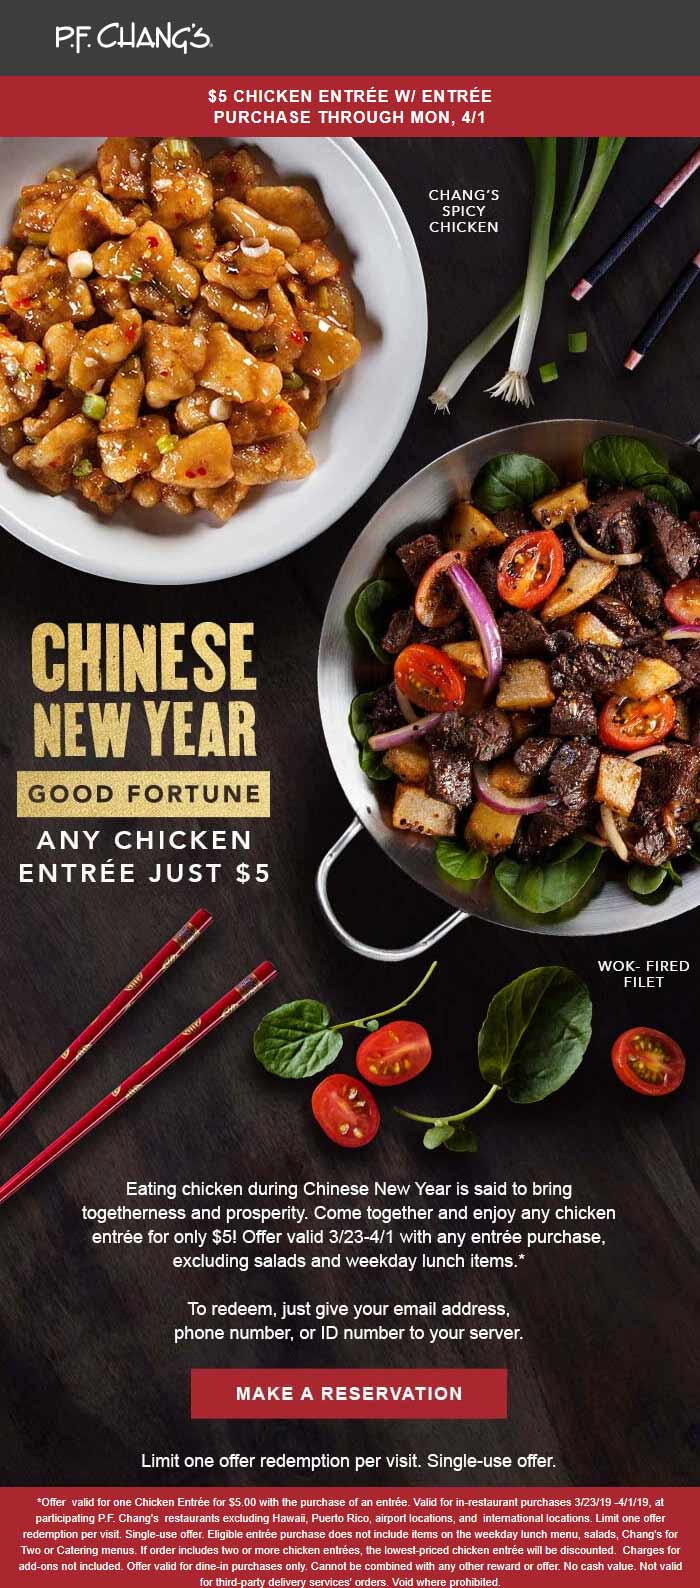 P.F. Changs coupons & promo code for [May 2021]